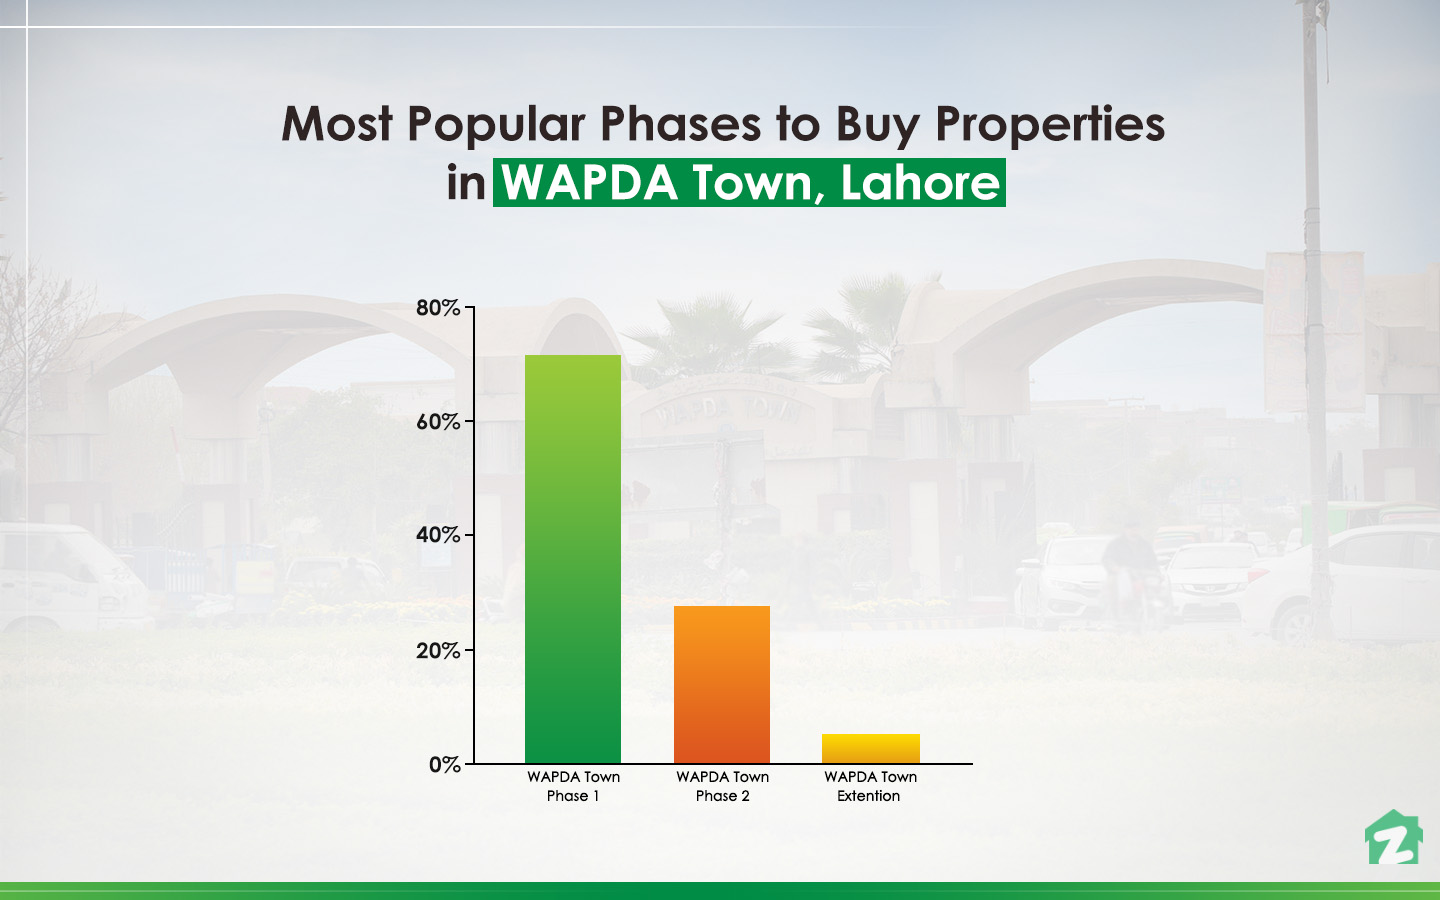 The Most Popular Phases to Buy Property in WAPDA Town, Lahore